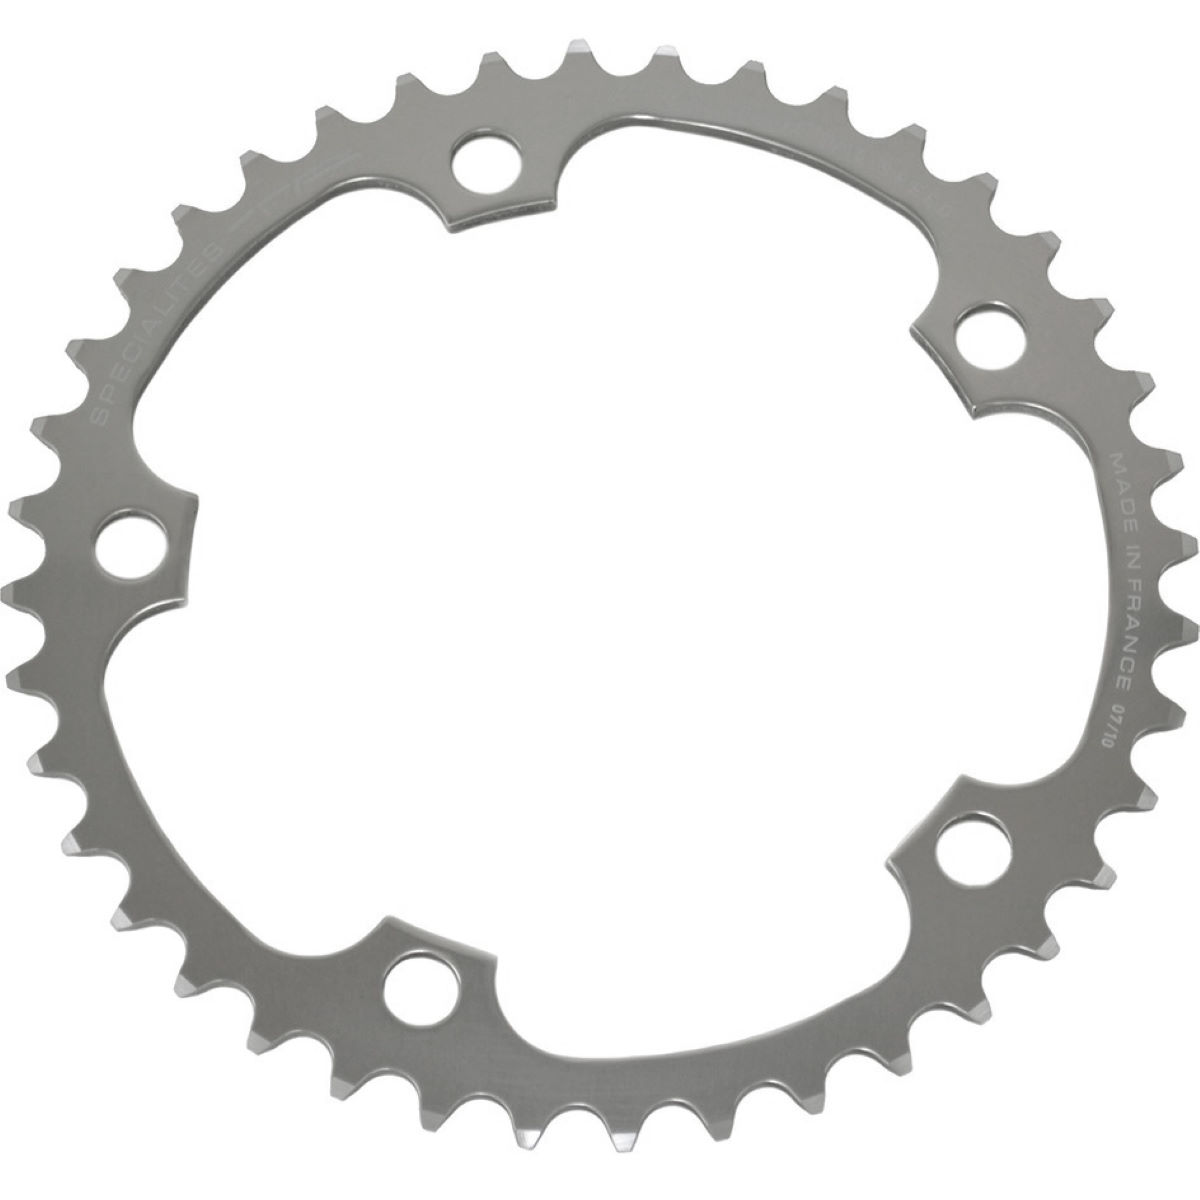 Ta 130 Pcd Alize Inner Chainrings (38-46t) - 46t Silver  Chain Rings